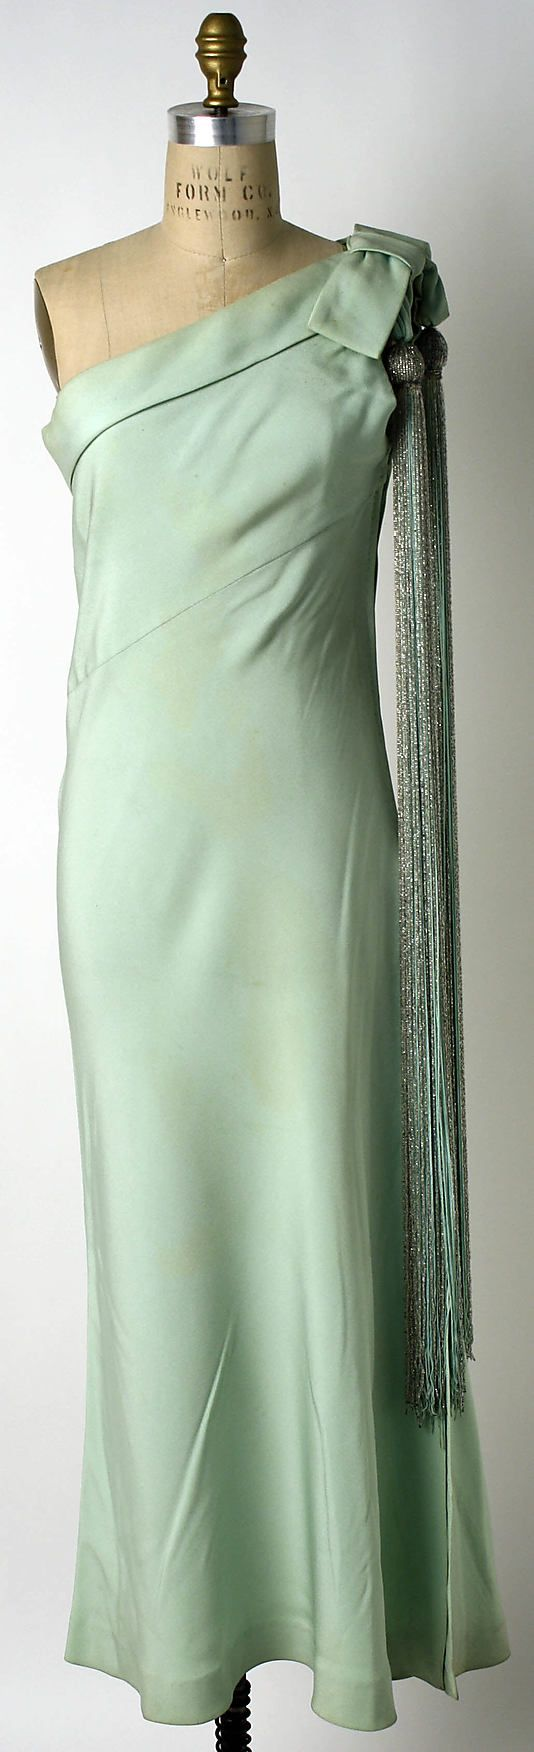 Evening dress - Jo Copeland 1965